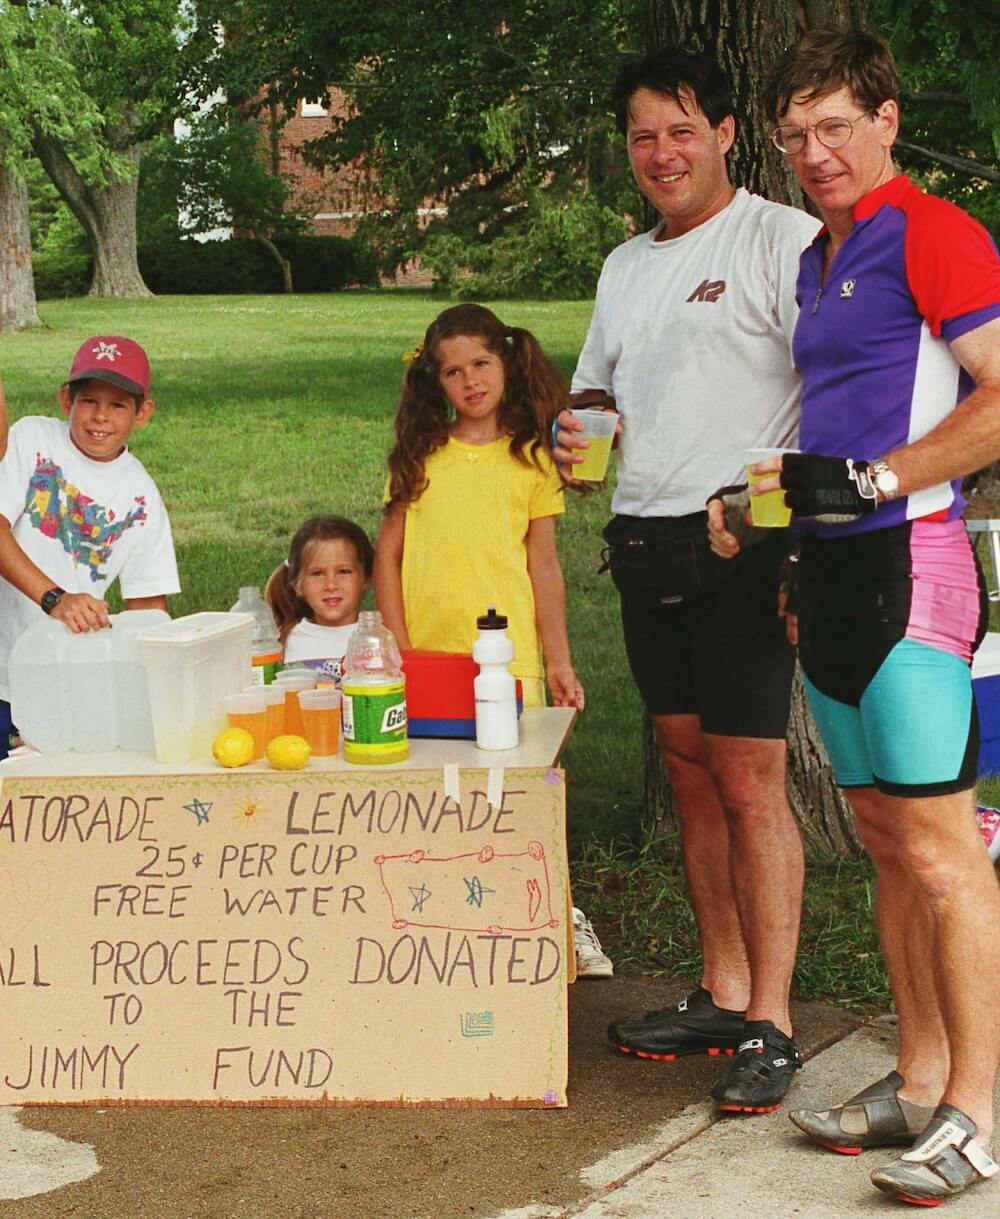 Team co-founders Dave Mittelman (second from right) and Greg Shoukimas (far right) enjoy some refreshment in 1995 at a lemonade stand set up to fundraise for the PMC  by Mittelman's children (from left) Andy, Melissa, and Jamie. The children would later became PMC riders themselves.